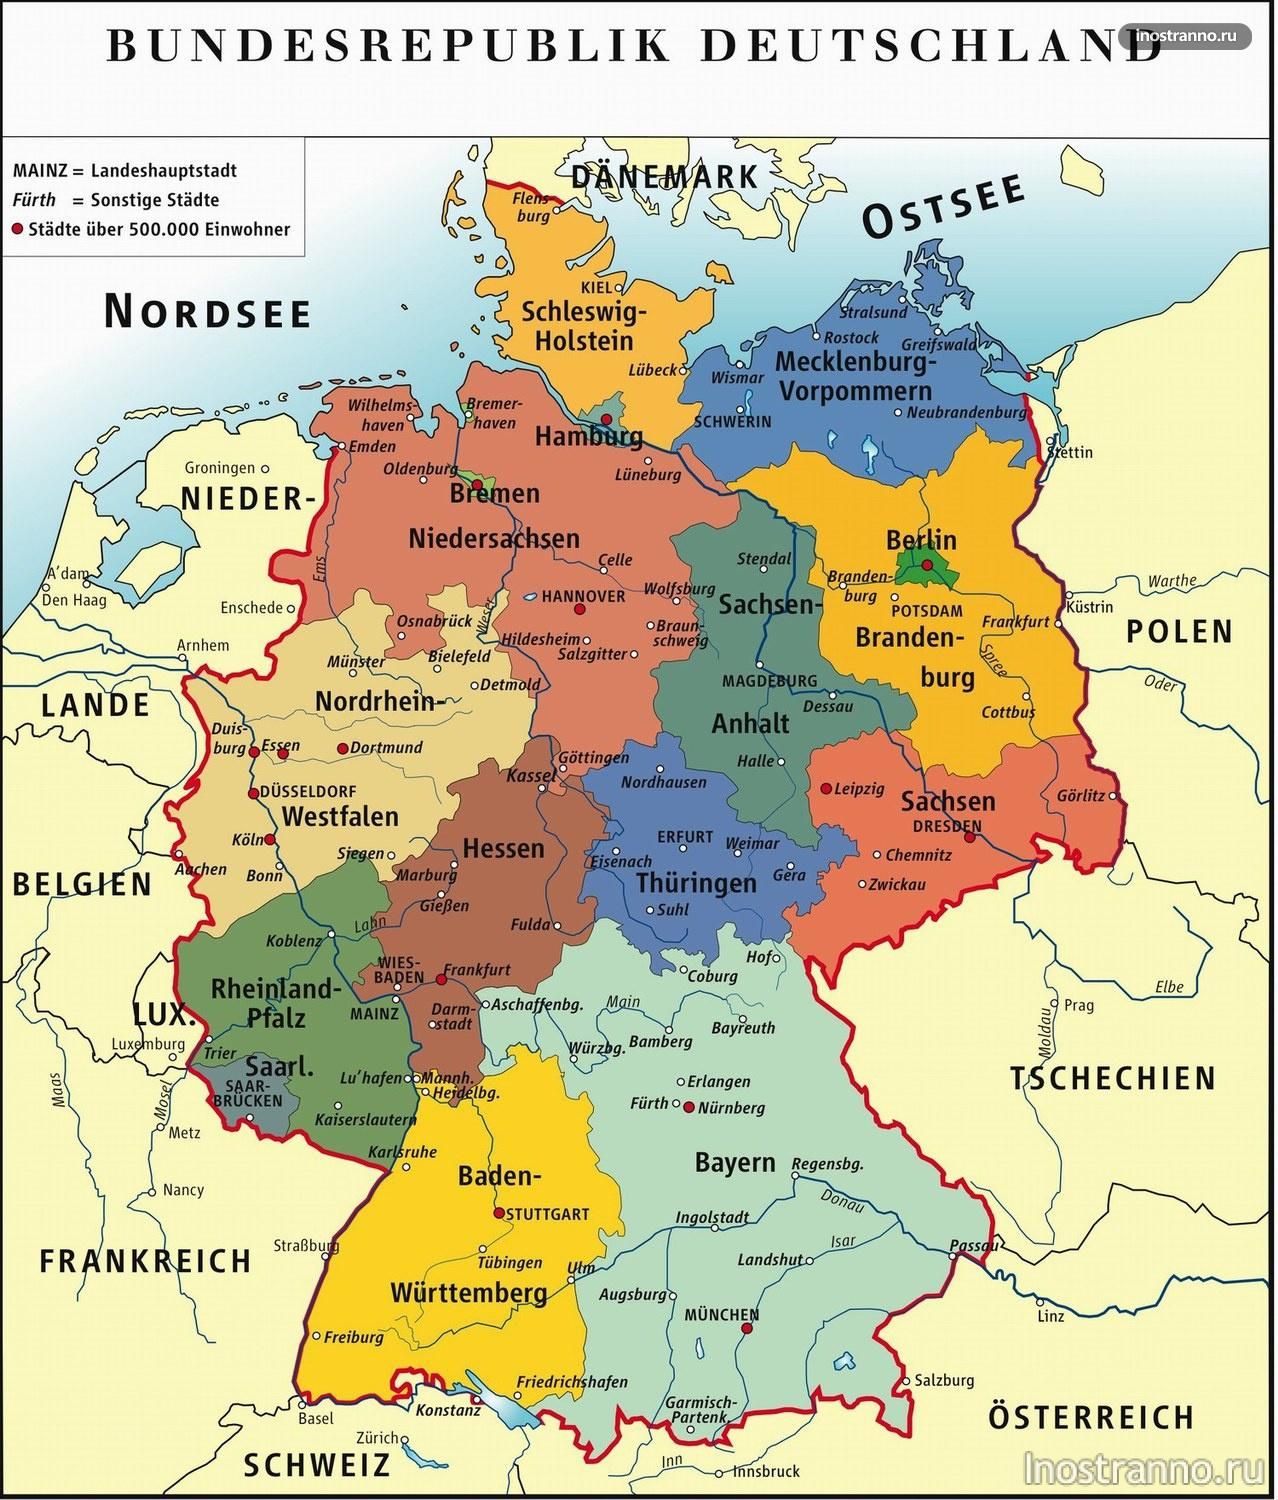 ethnical banking in germany and austria Mgt 3013 test 2 learn with flashcards, games, and more — for free search create log in sign up austria's cultural preferences is for achievement.